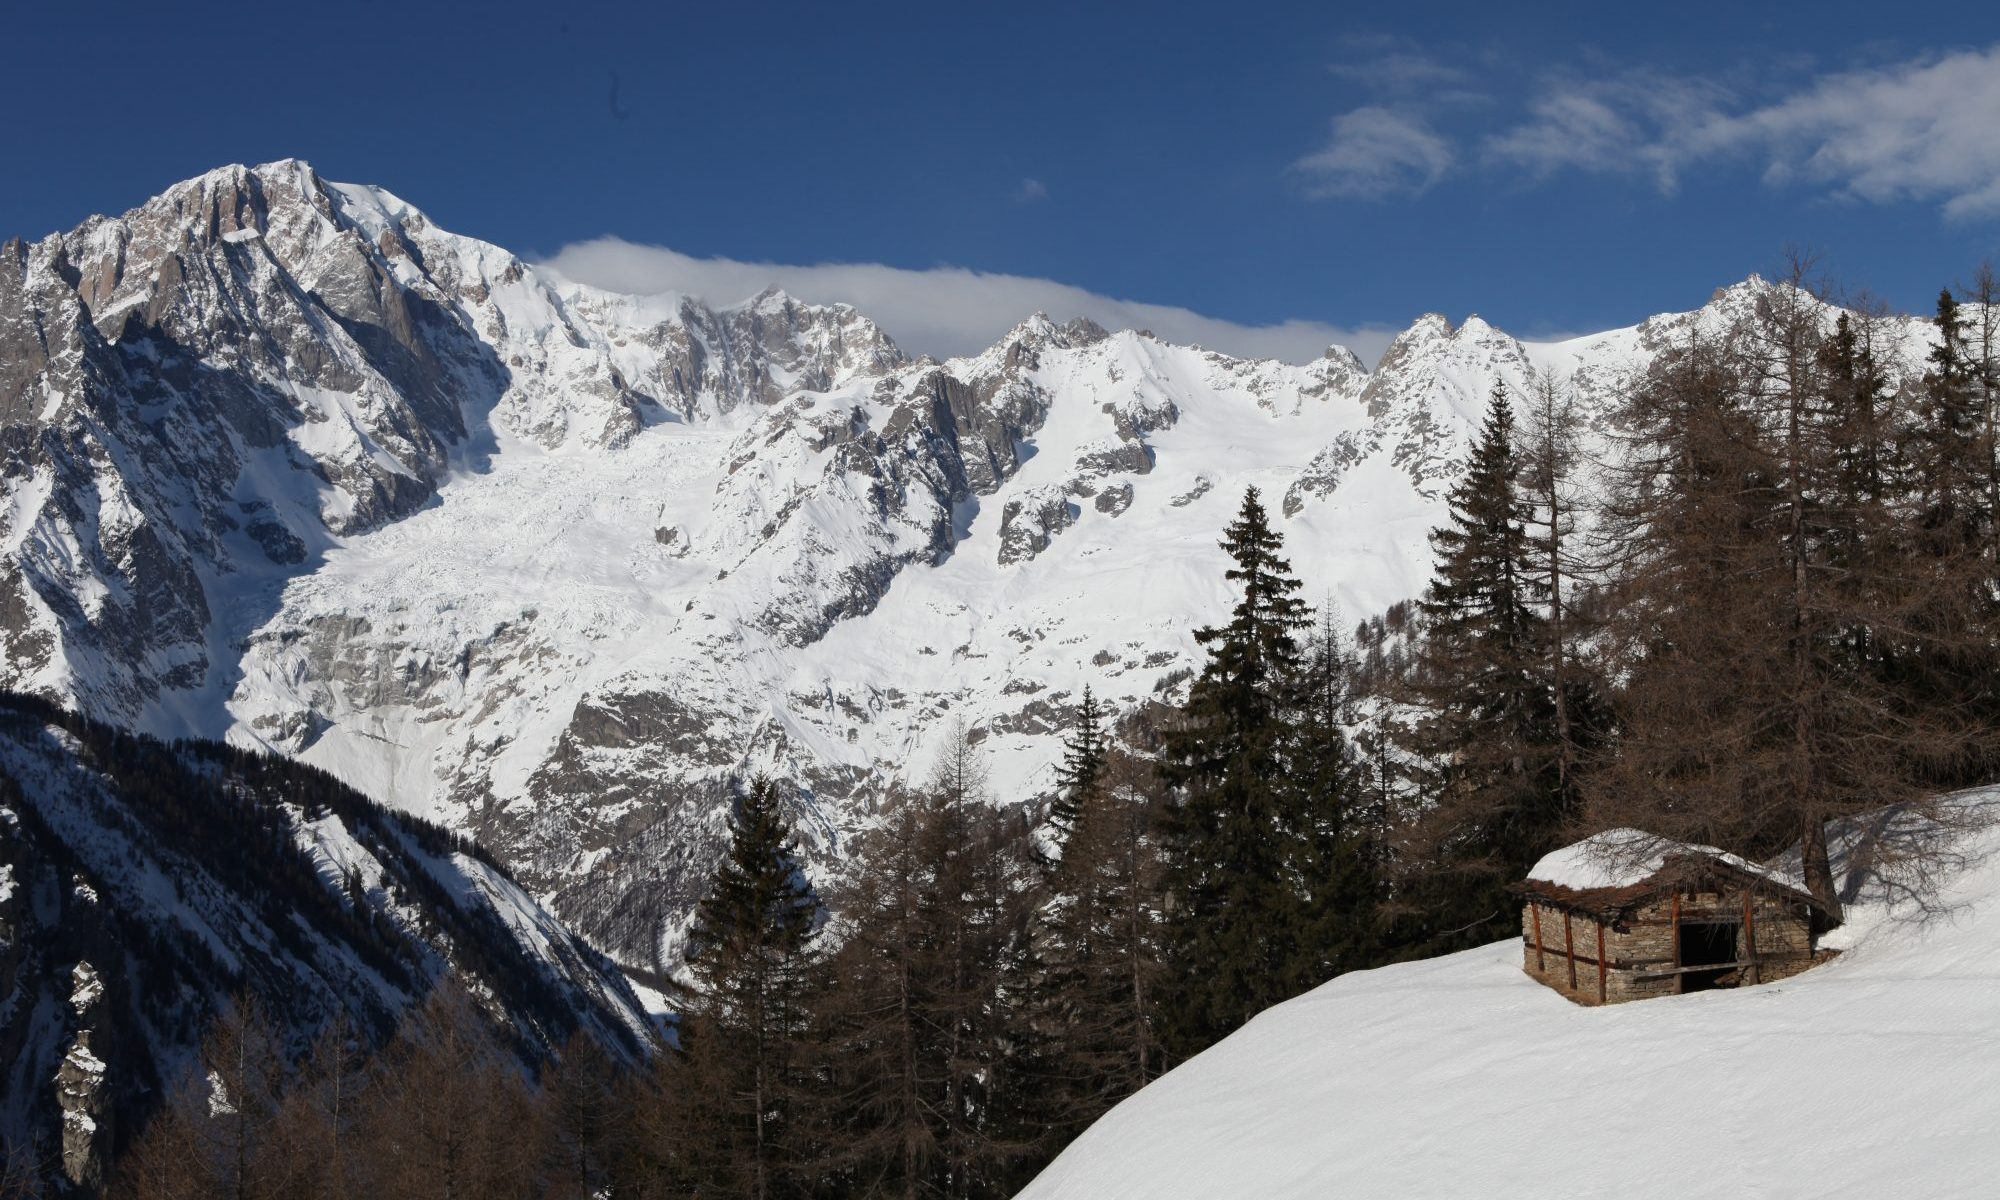 Photo credit: Antonio Furino - Courmayeur, Courmayeur - Ski Italy, Ski Aosta, Mont Blanc, Italy at its Peak. Courmayeur Mont Blanc Funivie is opening two new slopes with amazing panoramic views.